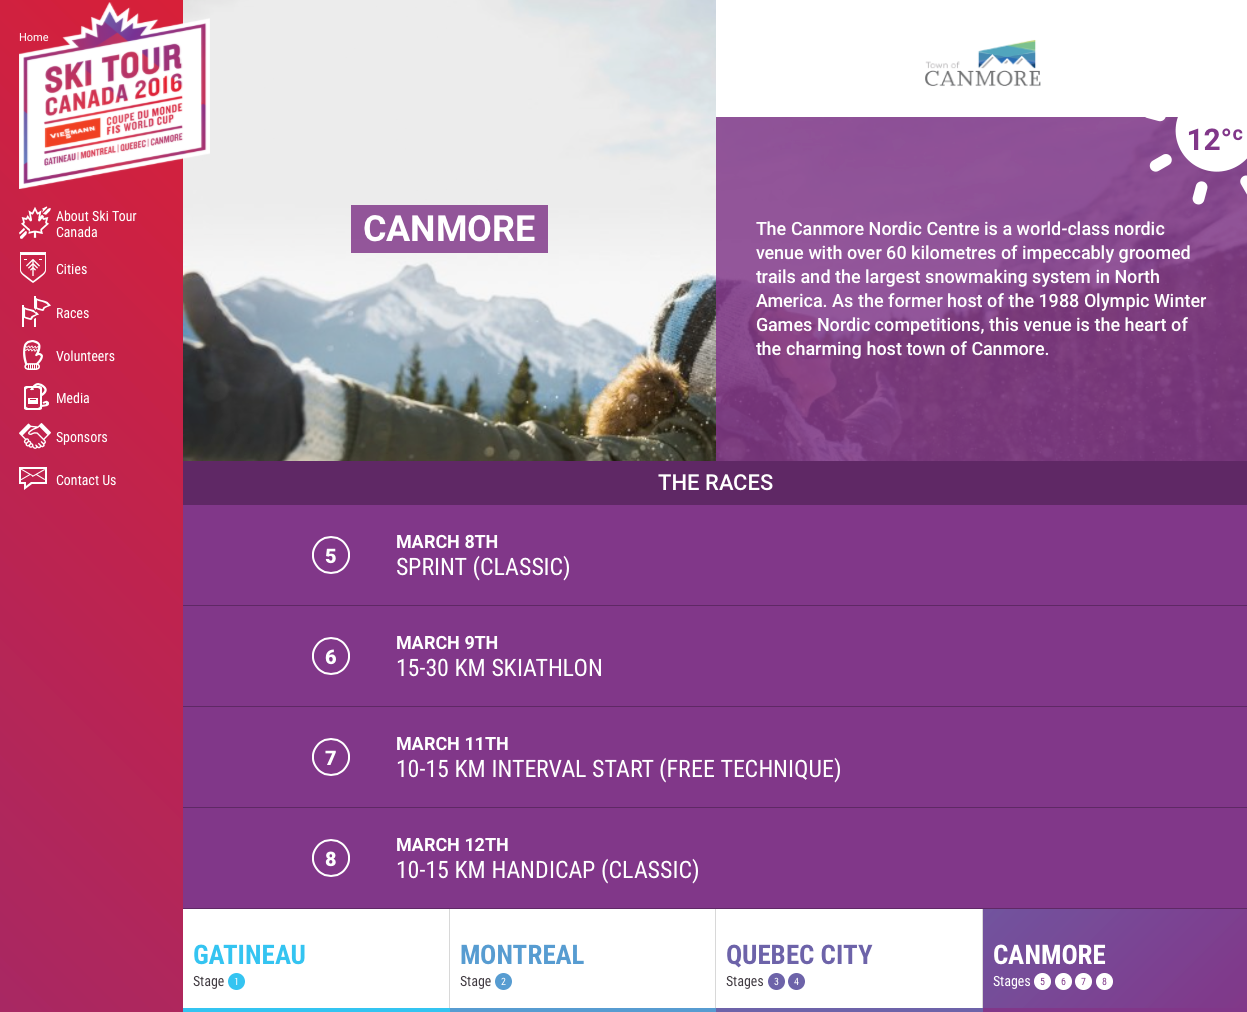 Ski Tour Canada 2016 unveils its website!